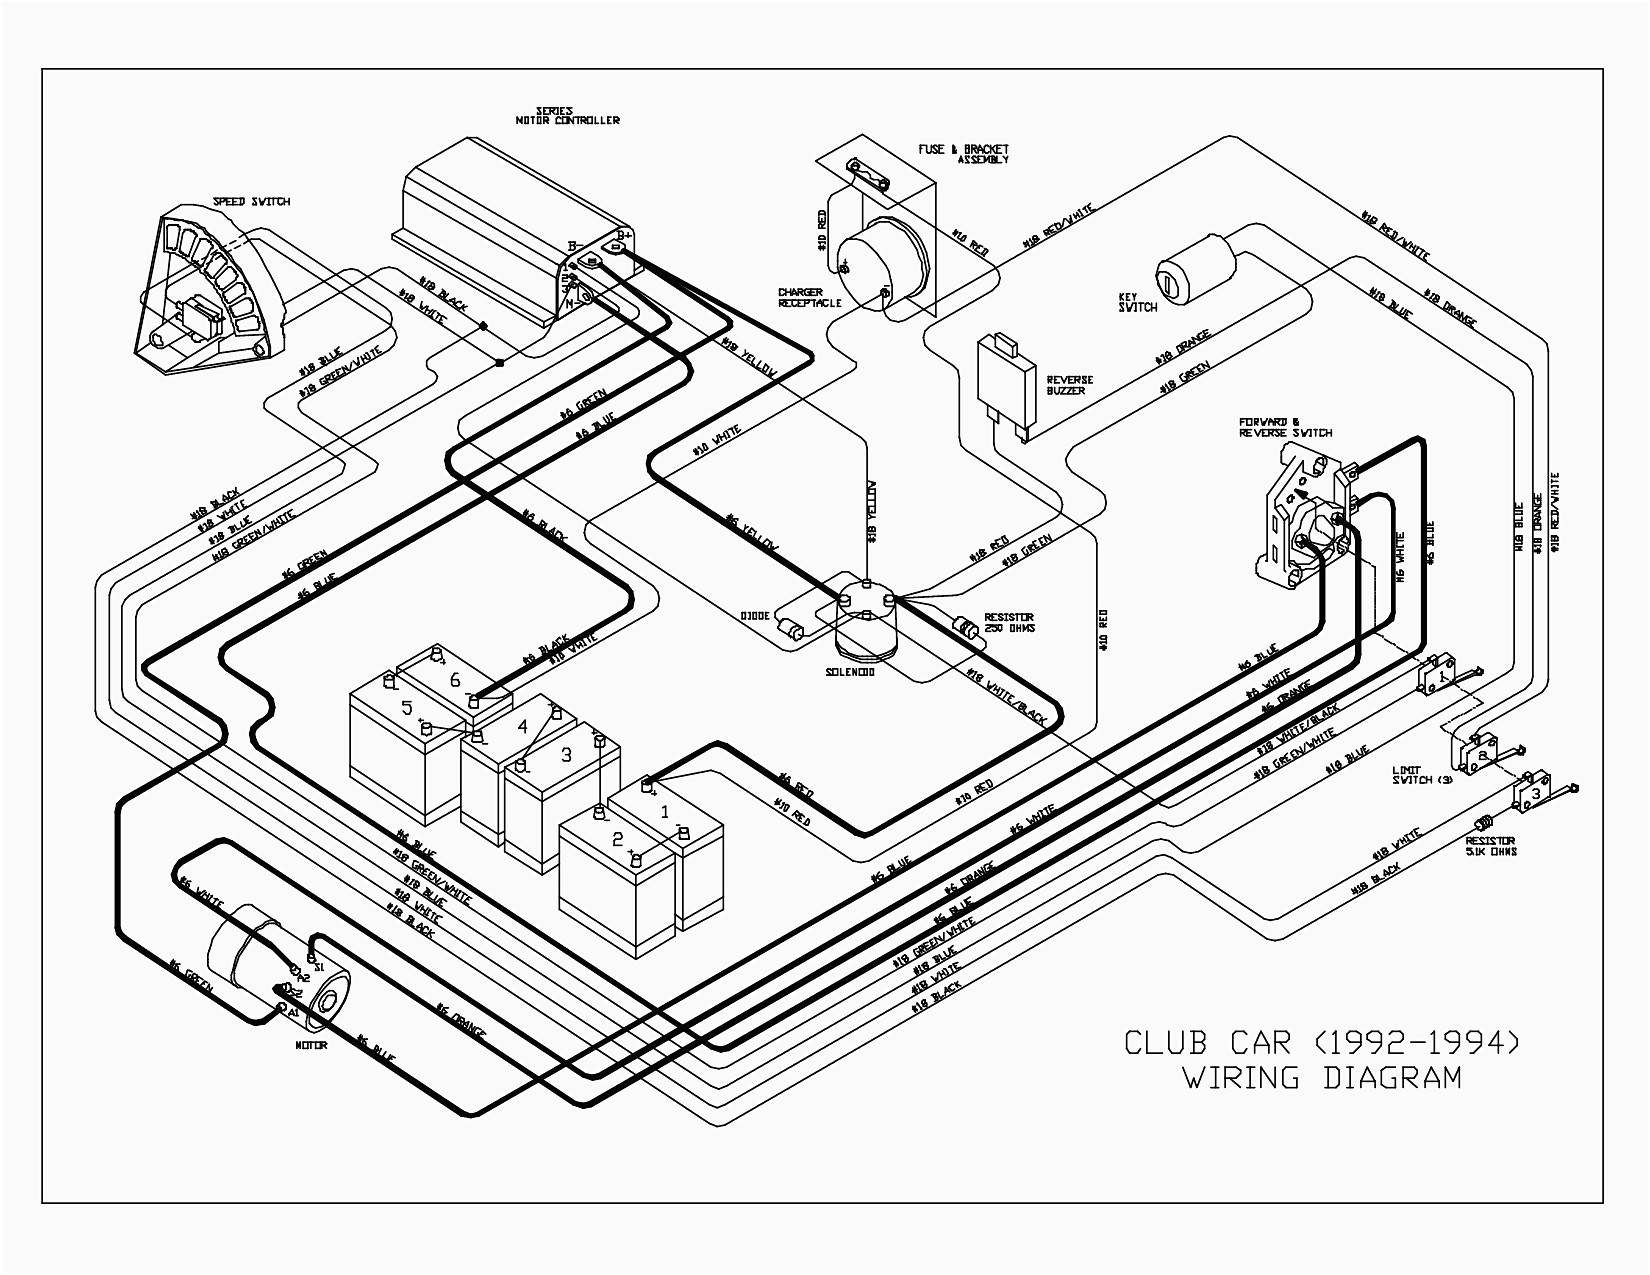 Club car golf cart wiring diagram carlplant unbelievable with ingersoll rand